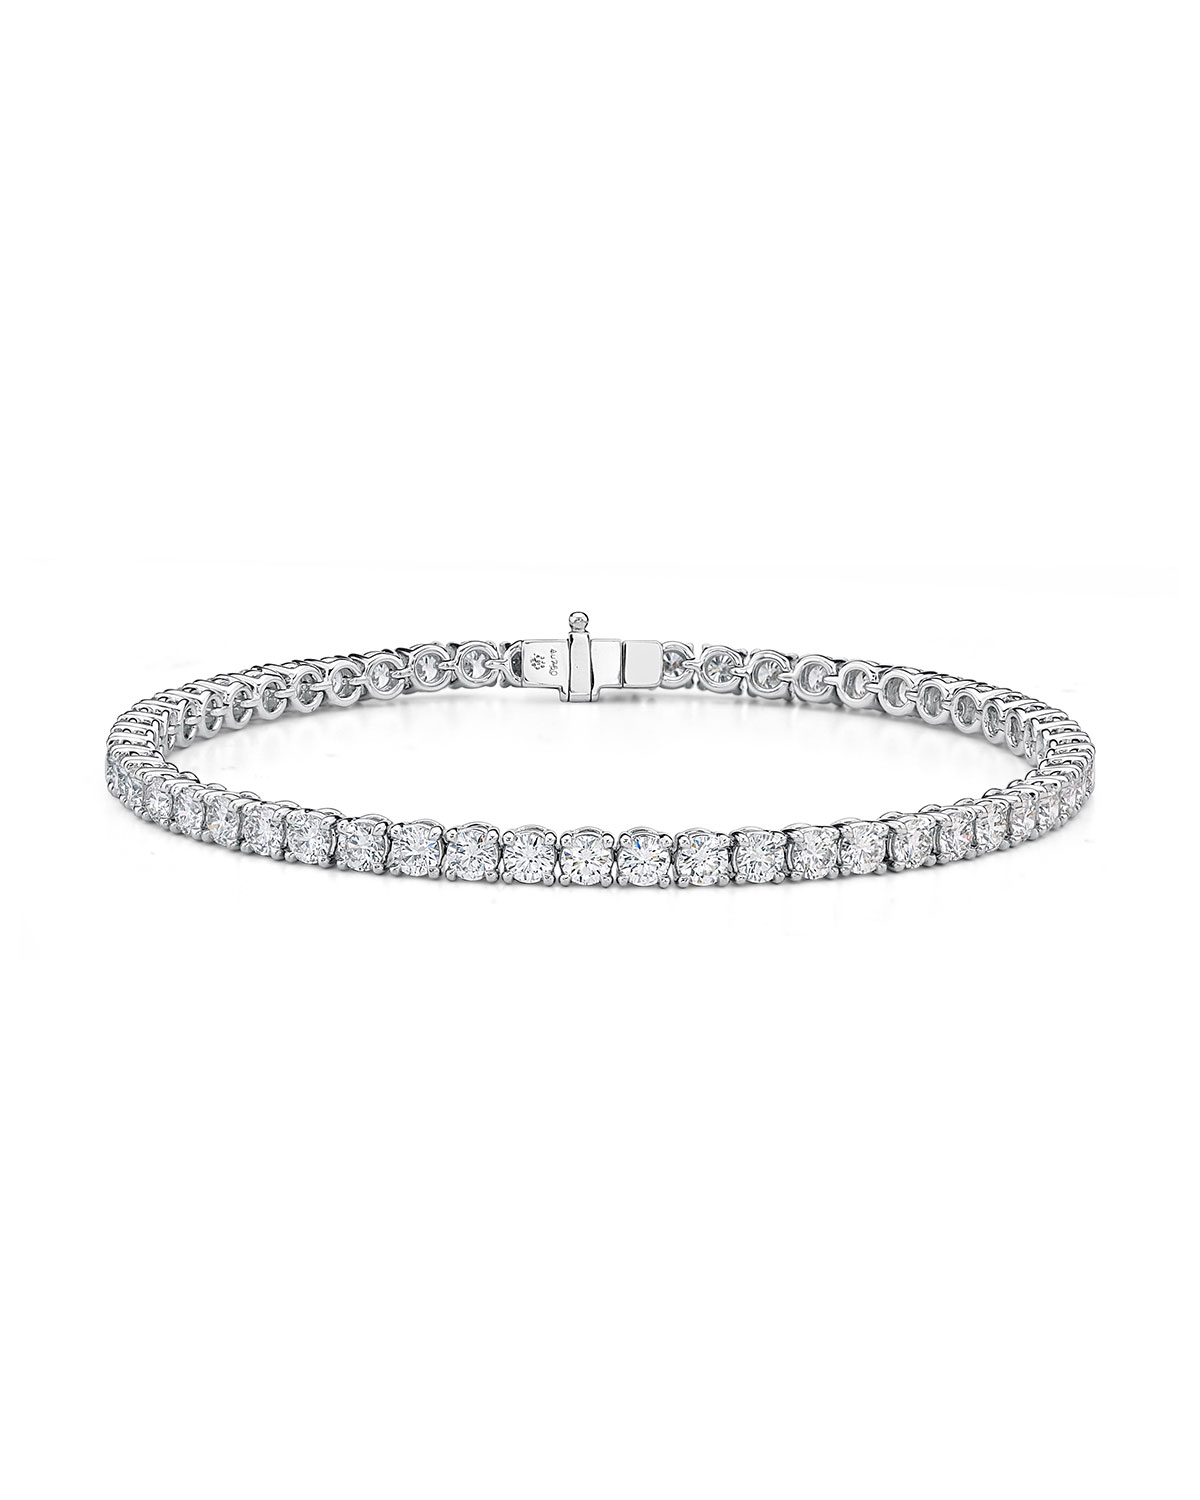 Memoire 18k White Gold Diamond Tennis Bracelet, 5.77tcw